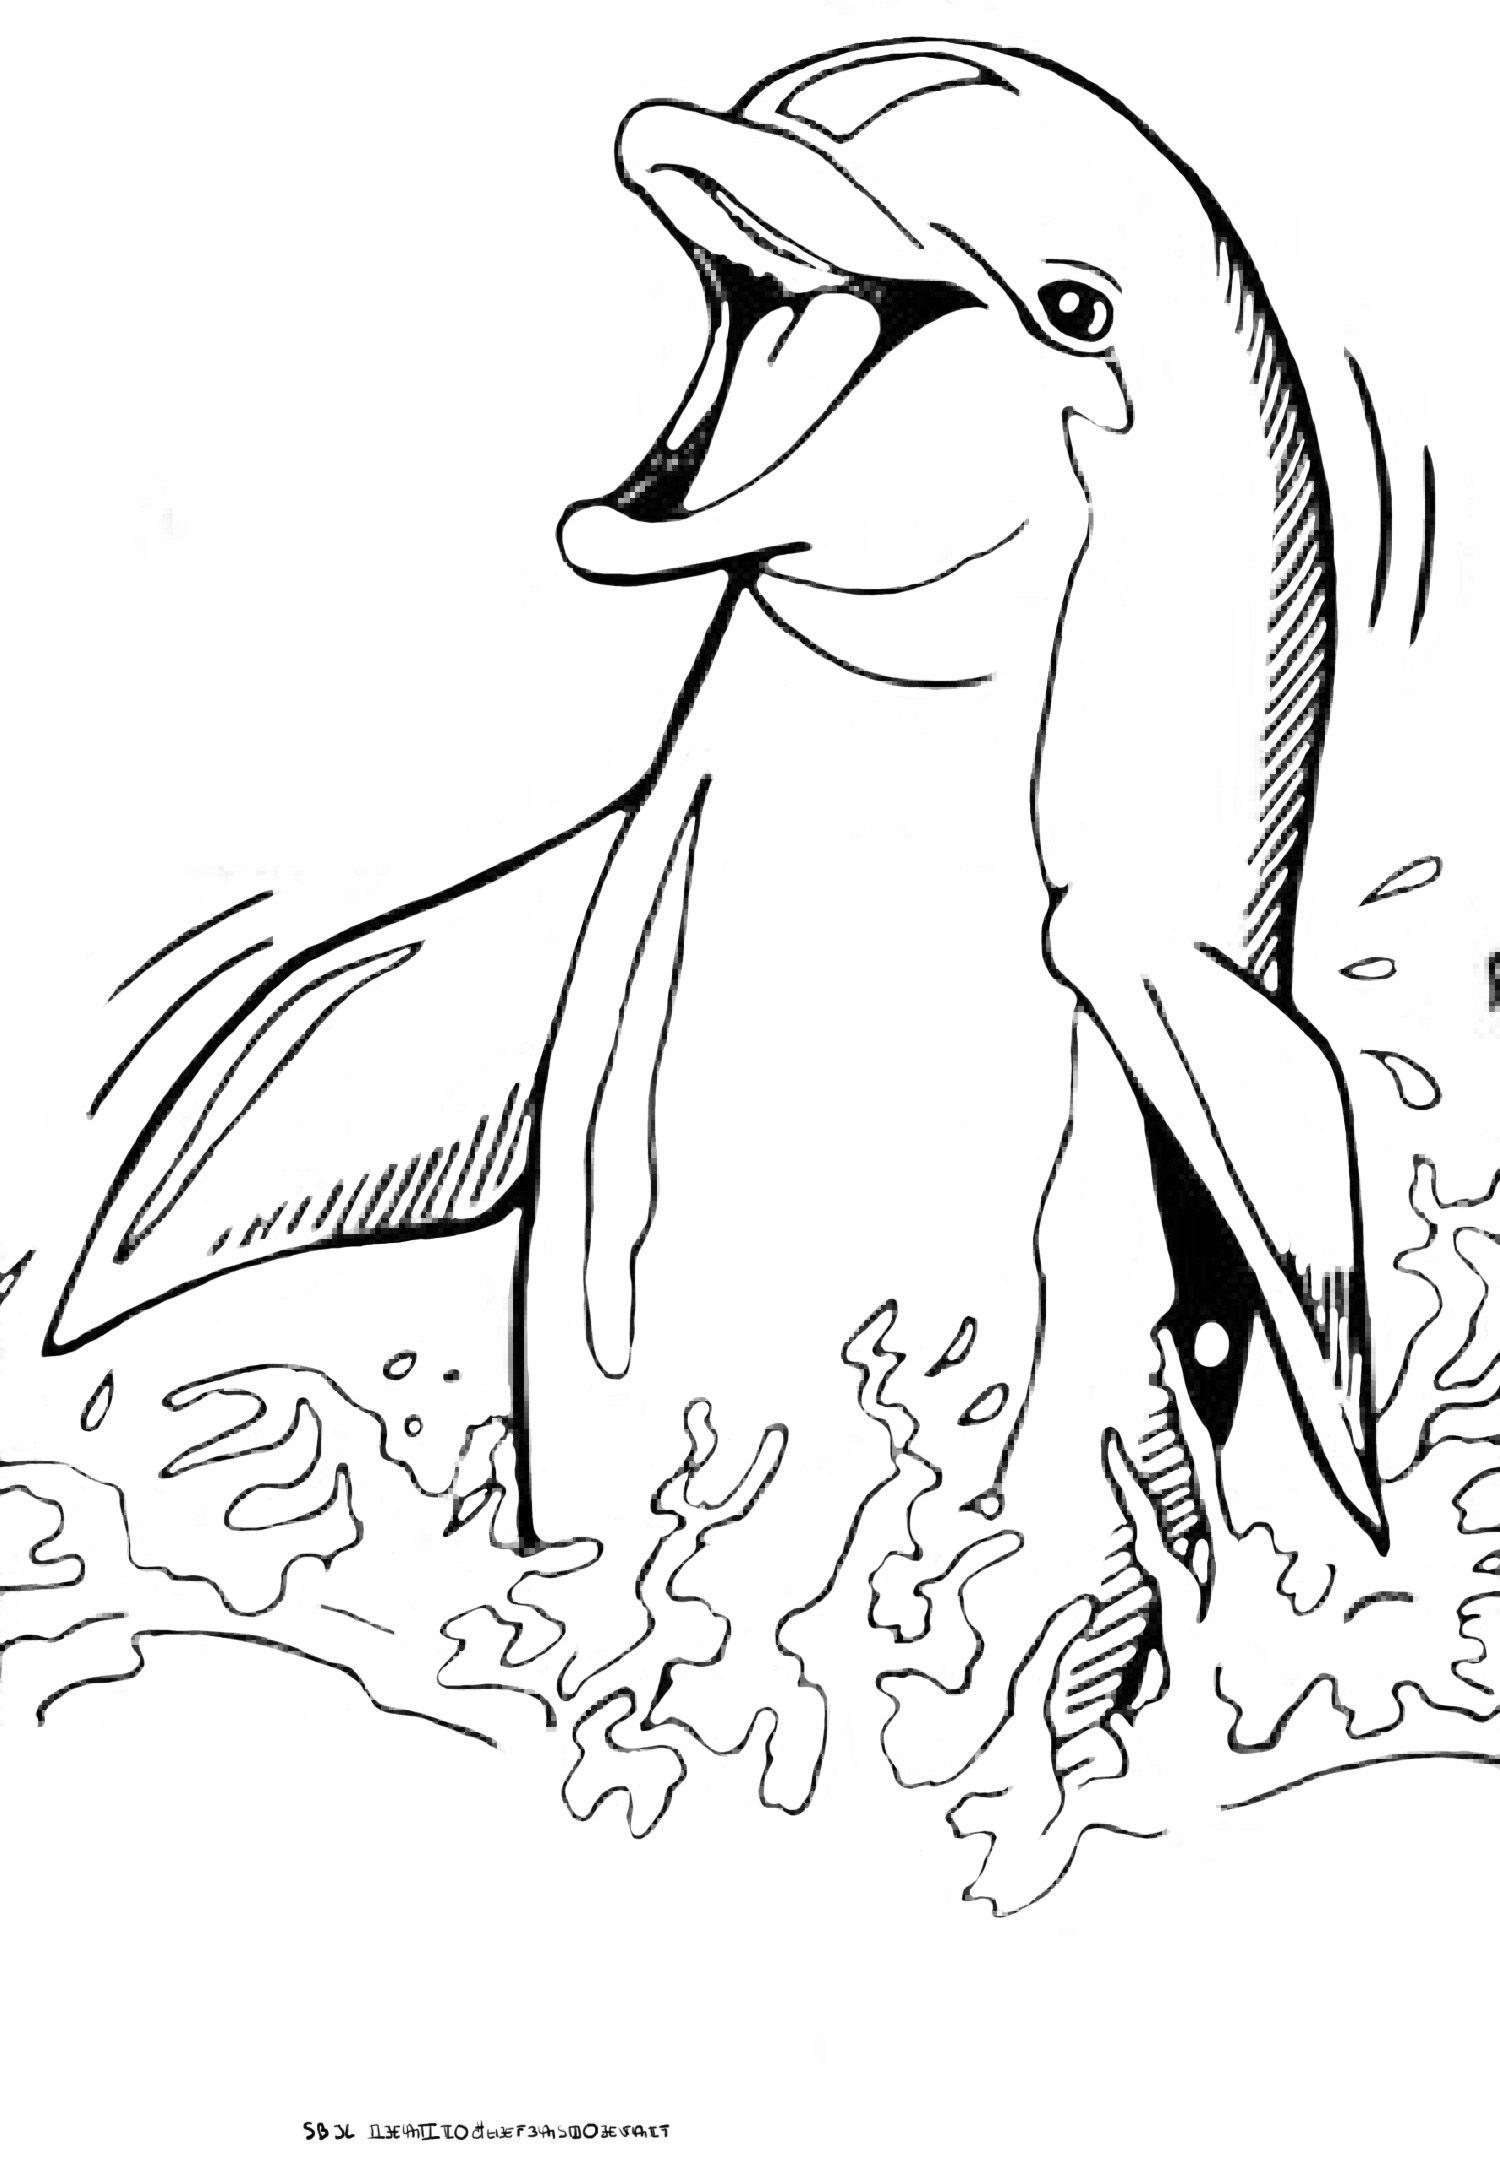 Coloriage 8 Dessin Dauphins | Coloriage Dauphin, Dauphin pour Dessin De Dauphin À Colorier